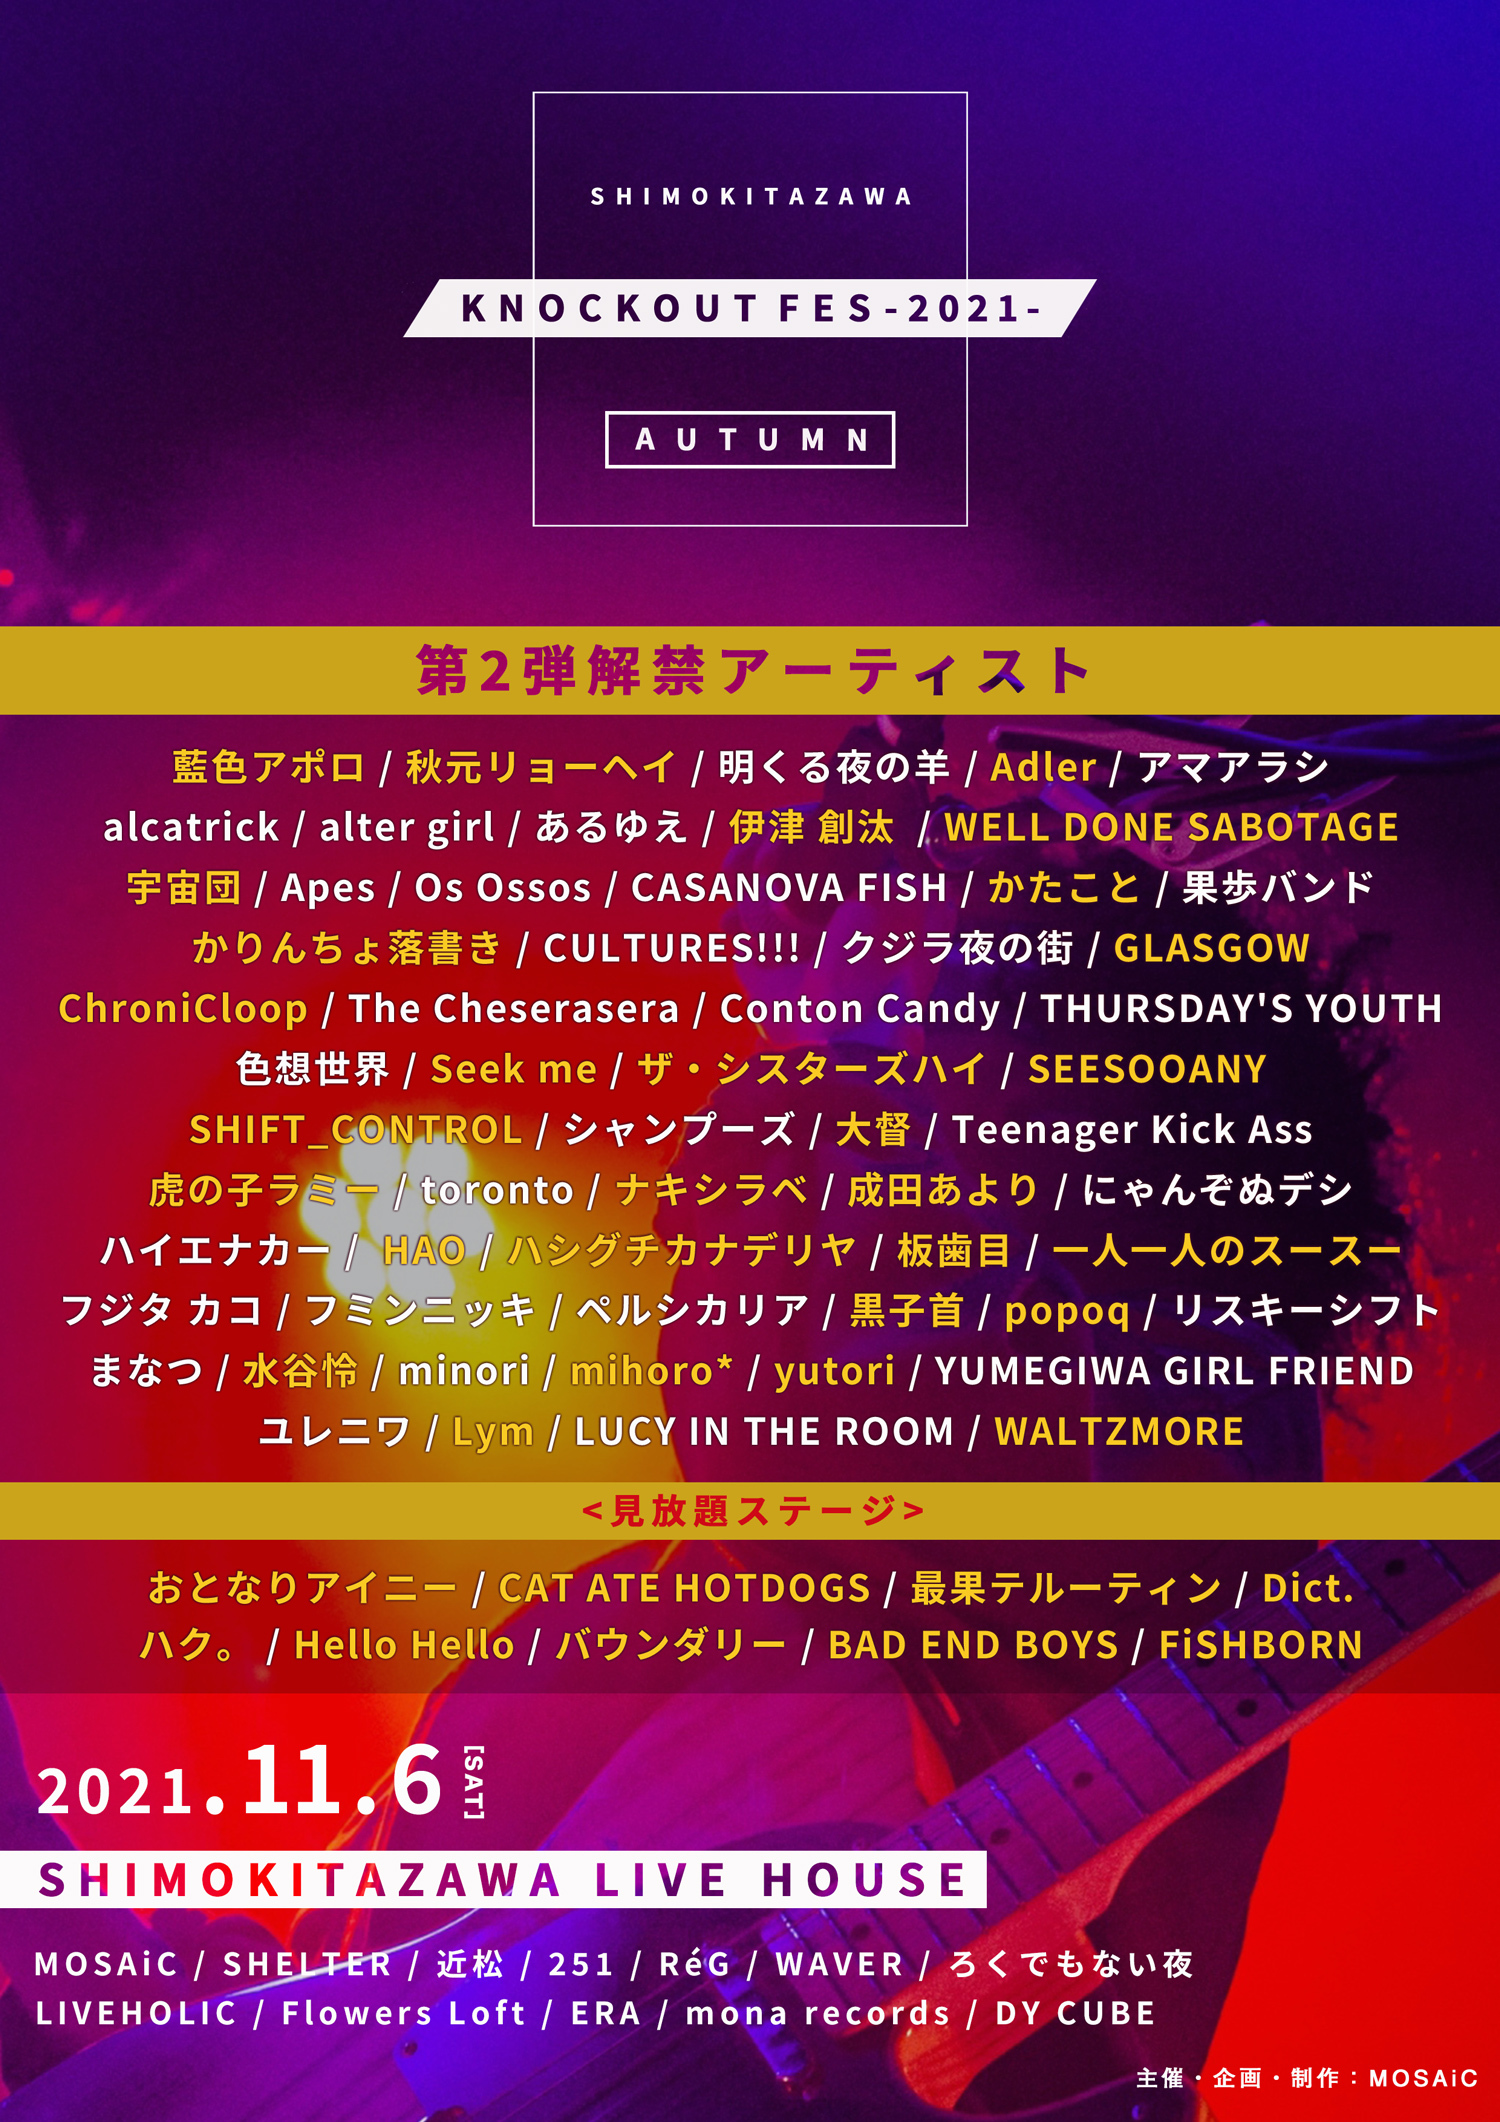 『KNOCKOUT FES 2021 autumn』第2弾解禁アーティスト